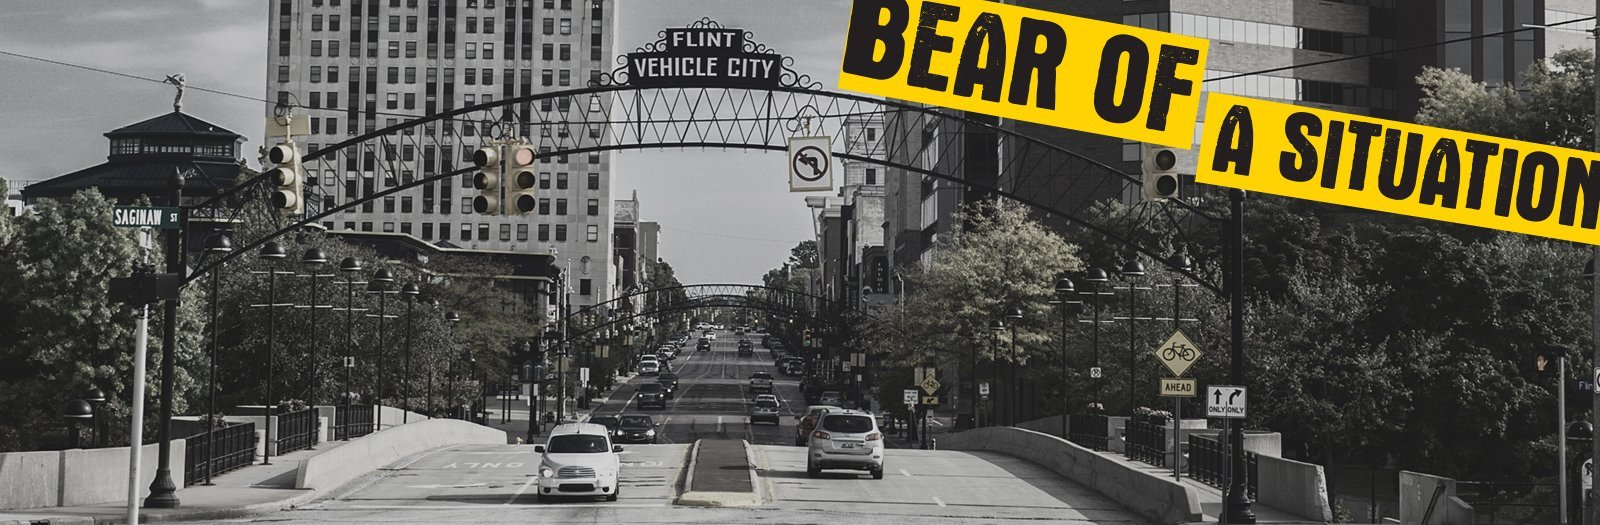 Bear of a Situation text over a view down a Flint street.